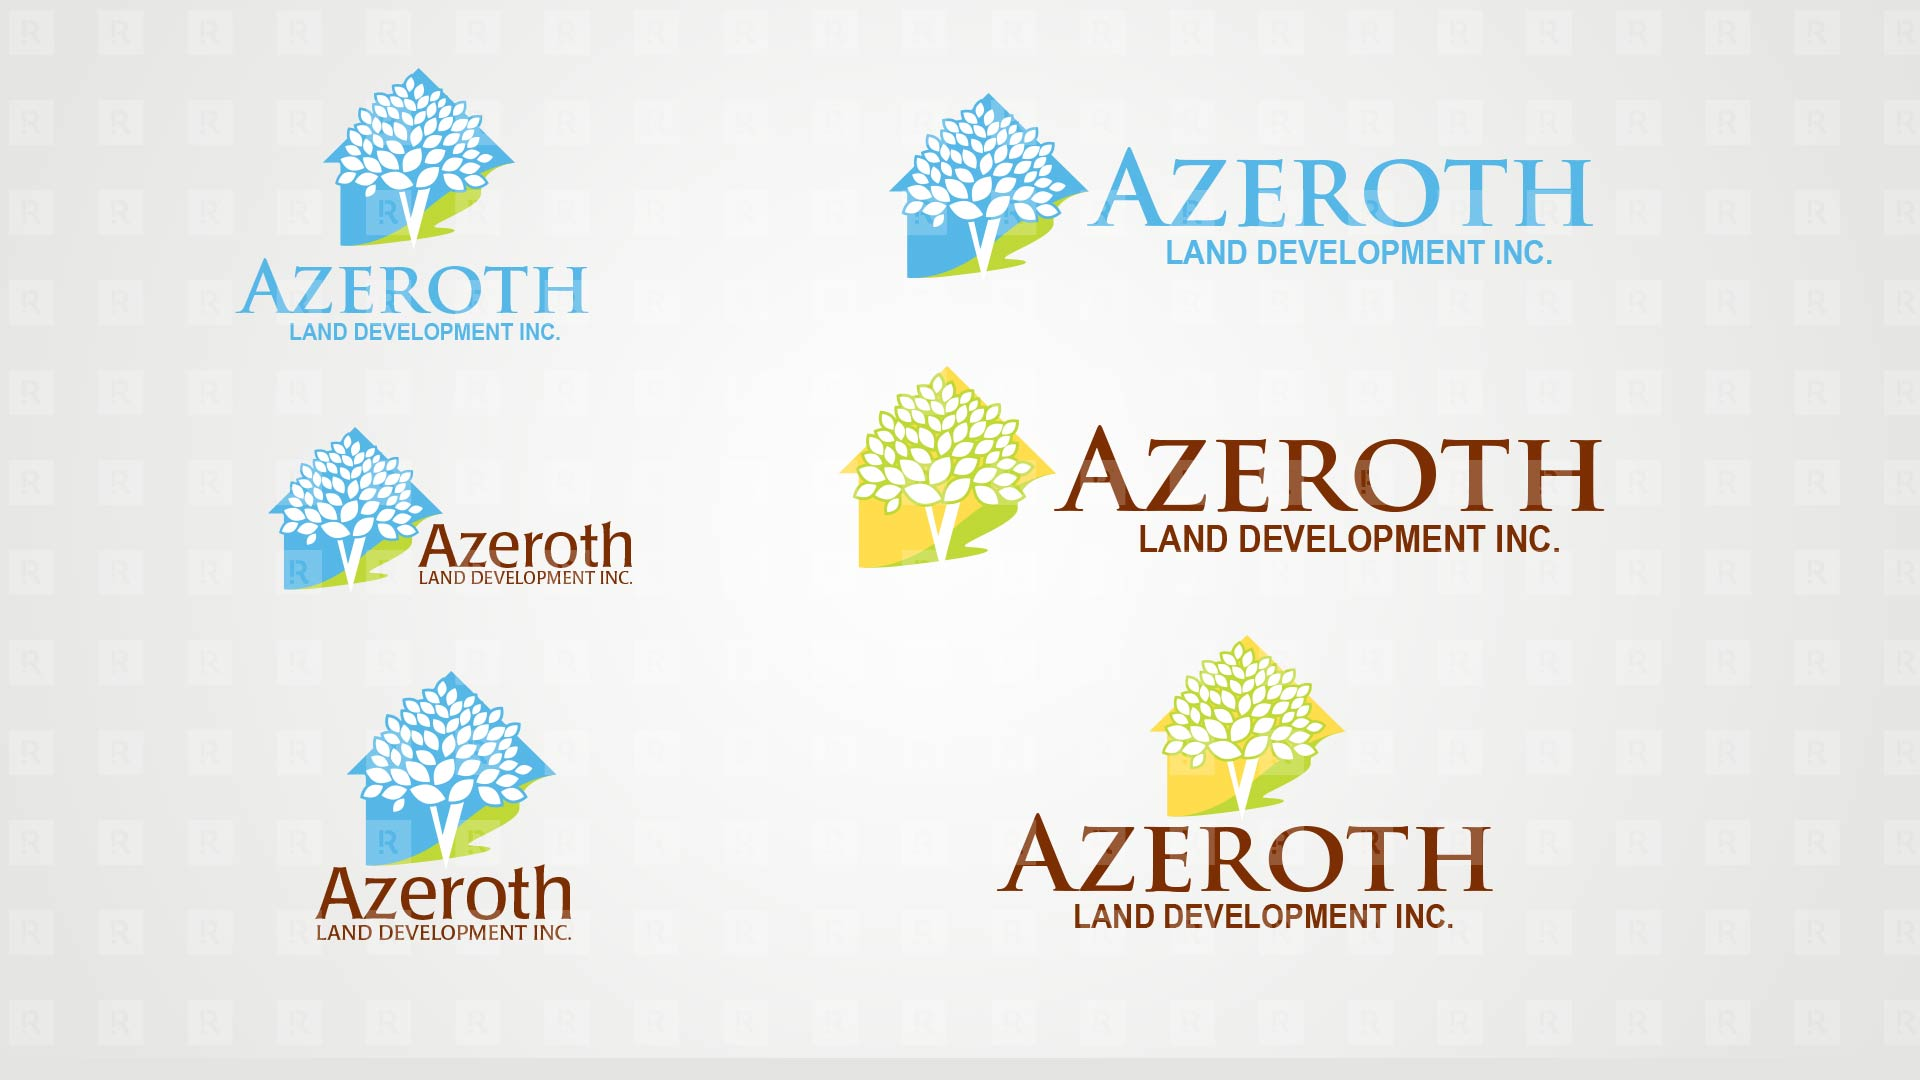 Azeroth Land Development Inc. Brand Identity studies